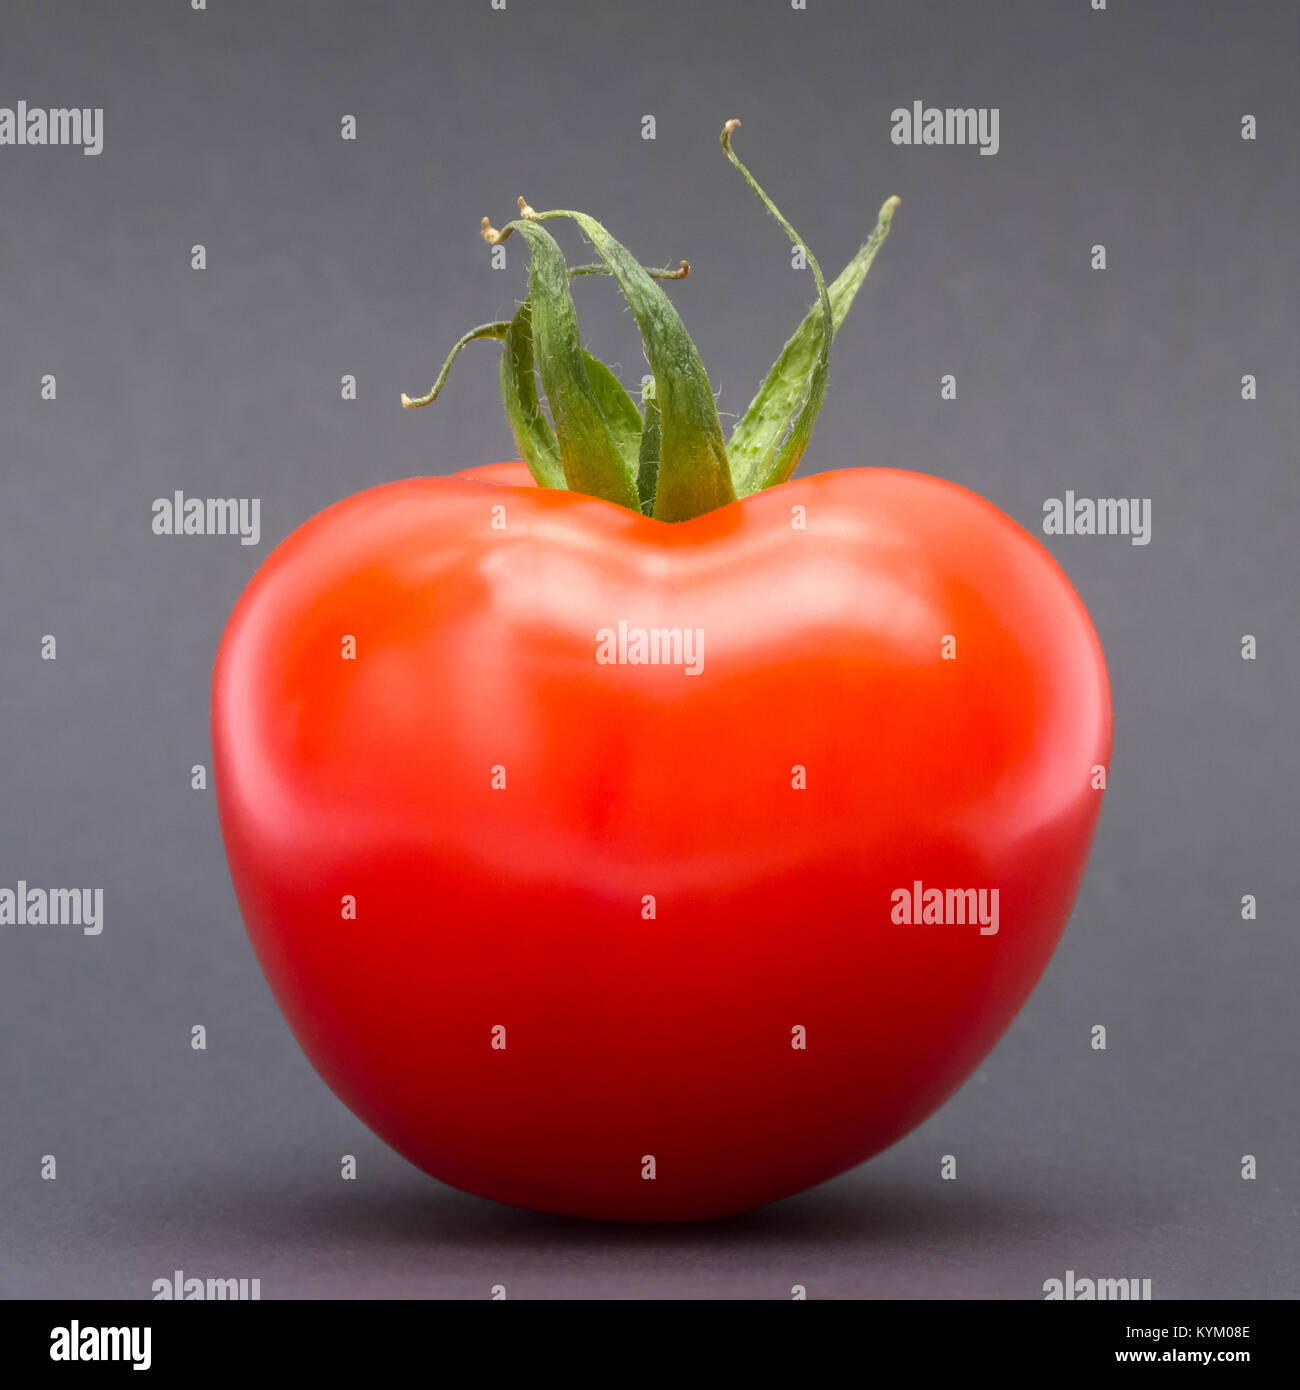 Red tomato on grey background - Stock Image